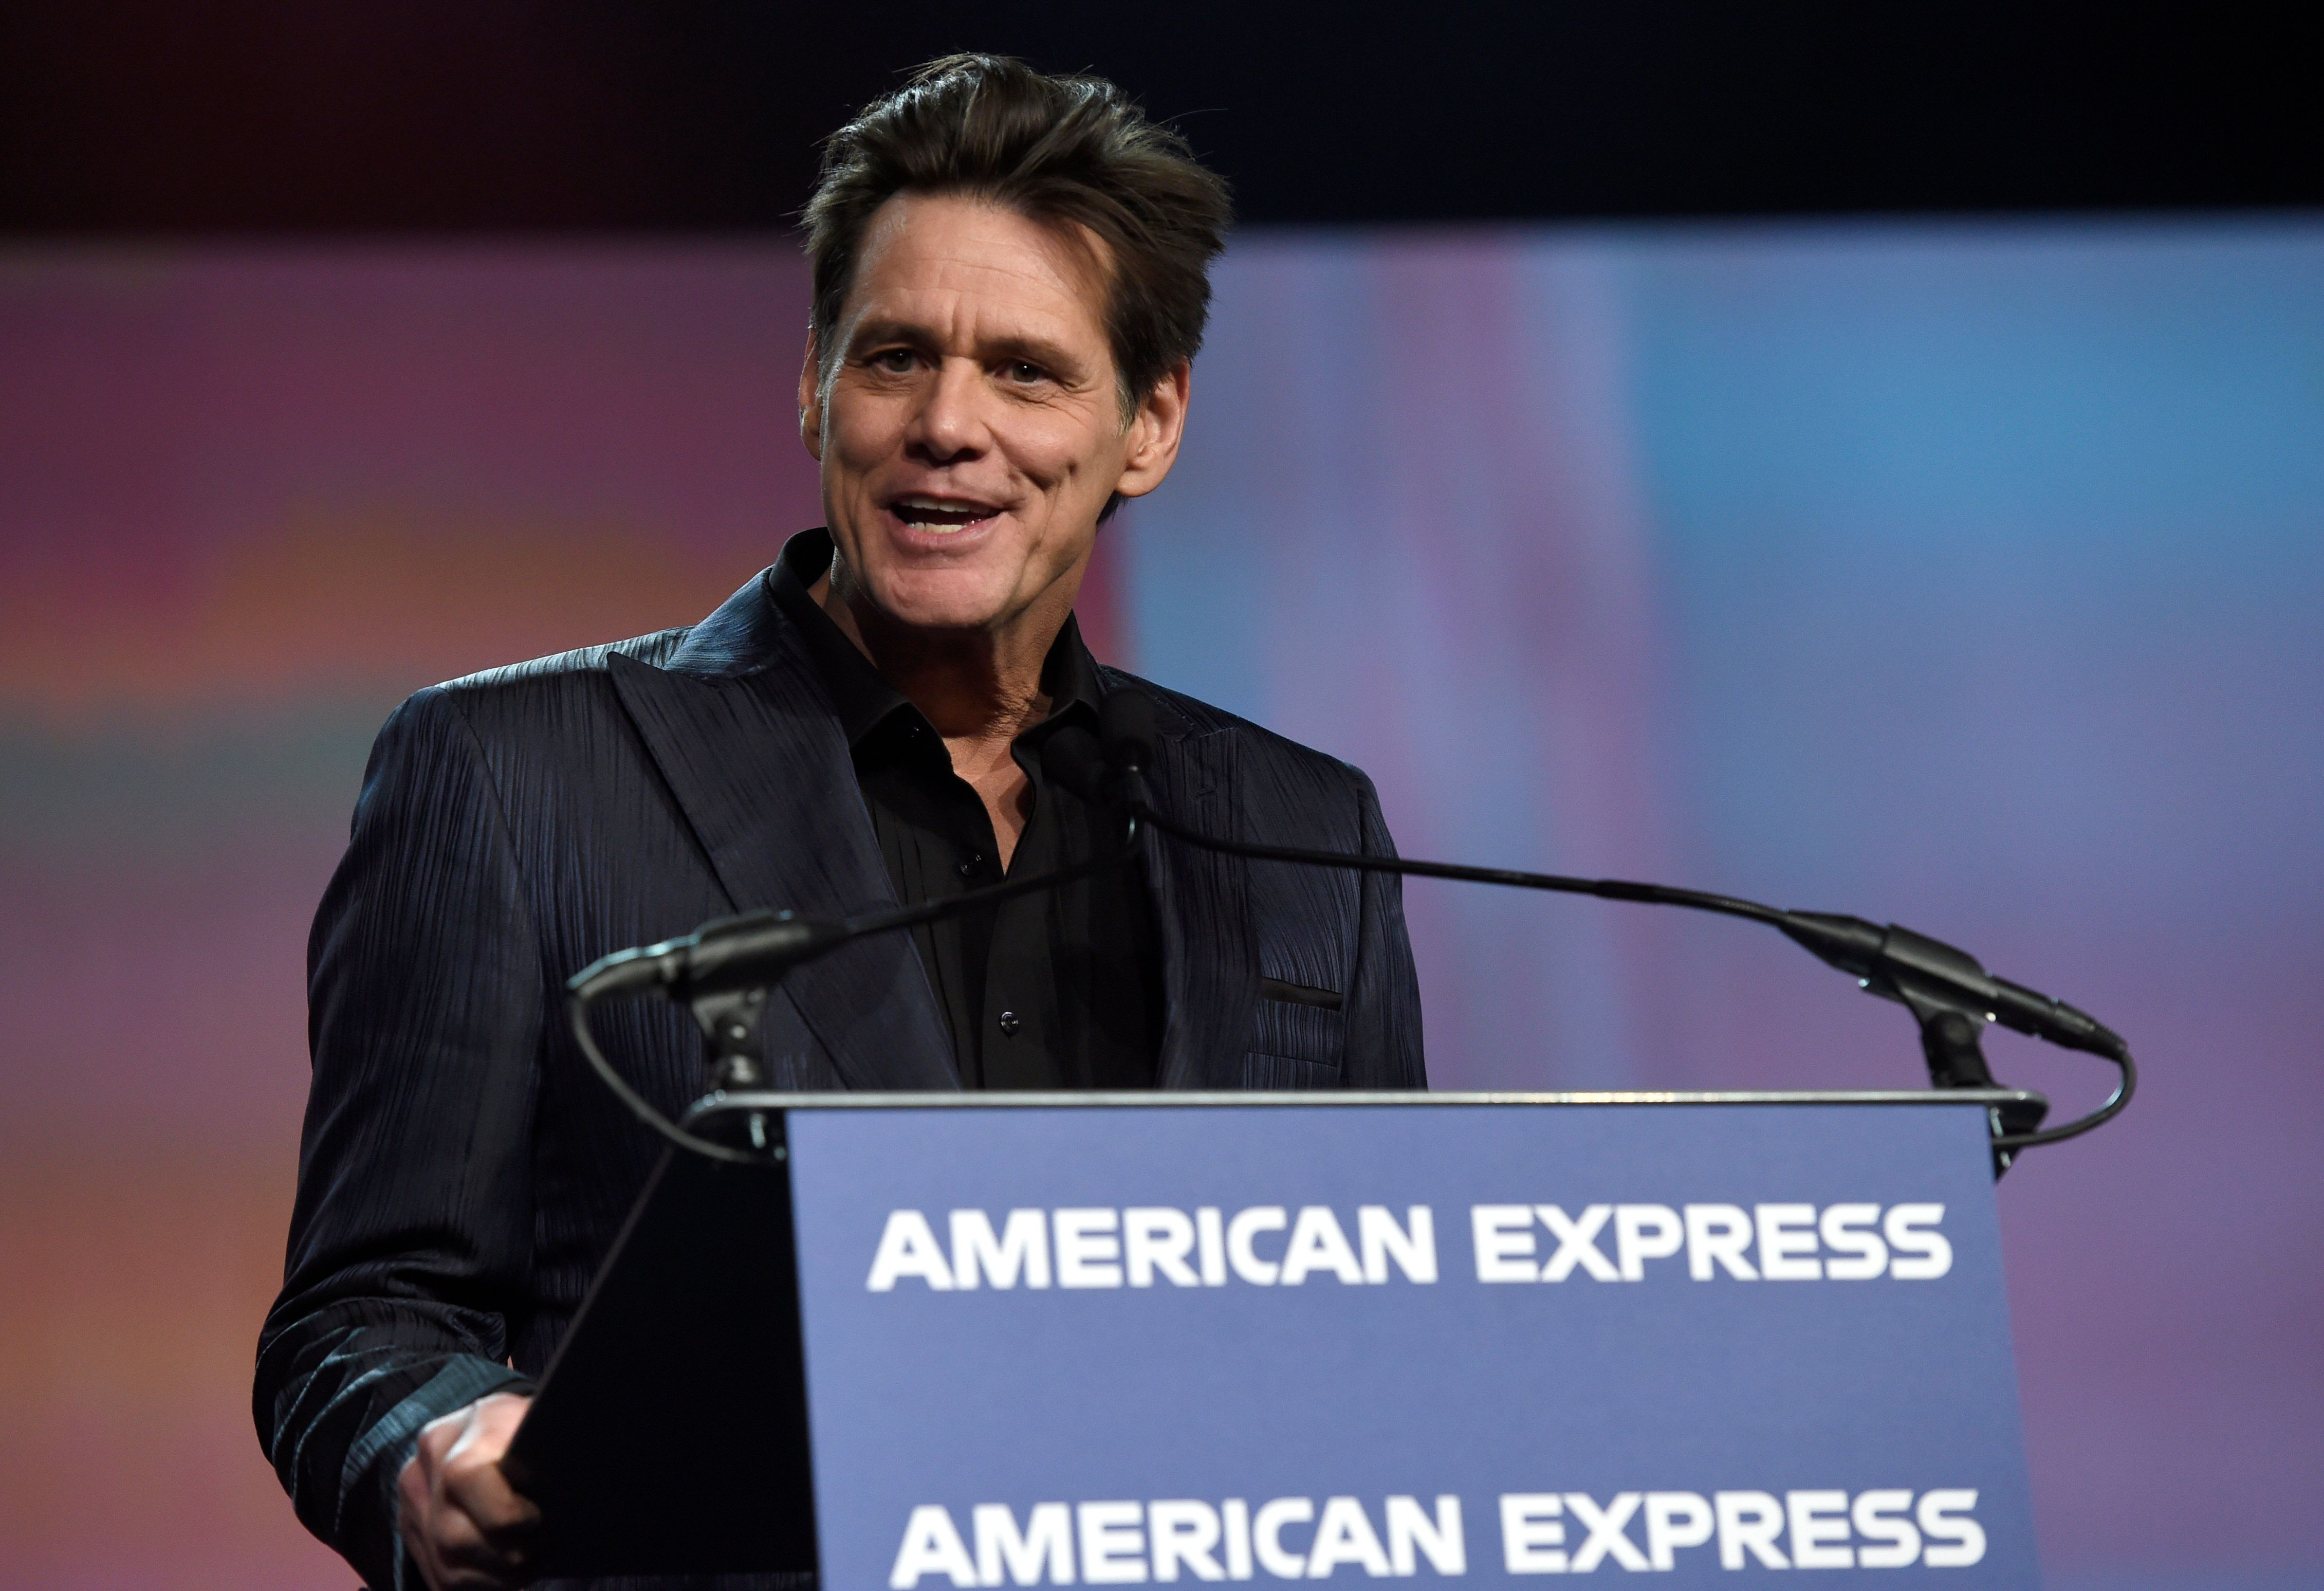 Jim Carrey Shares Cartoon Theory Of Devolution About Trump Supporters